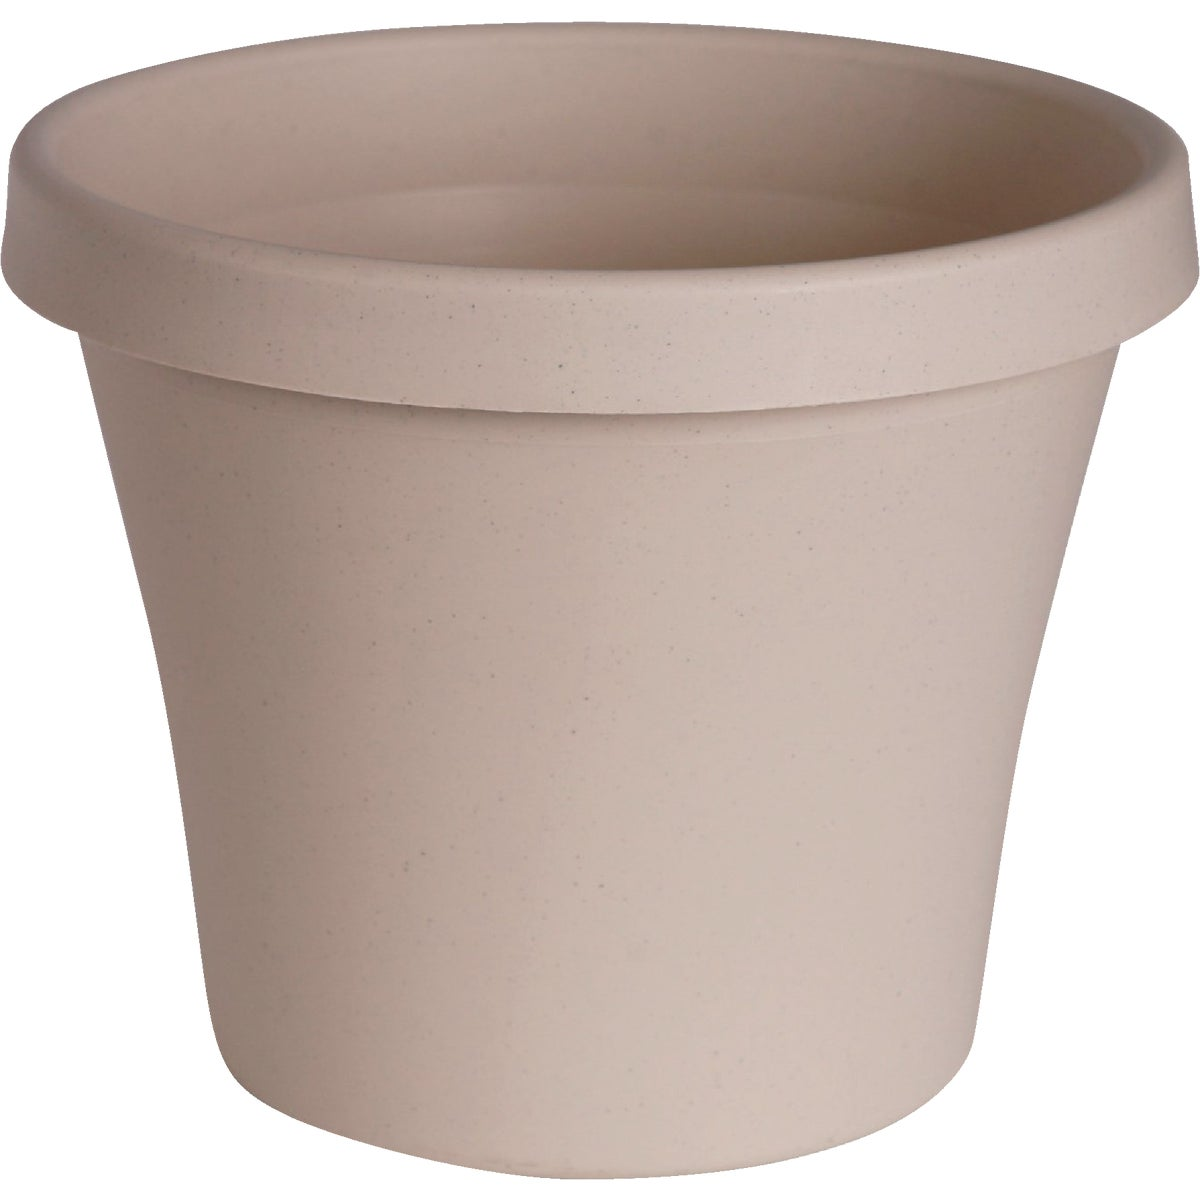 "6"" PEPRSTONE POLY POT - 50606 by Fiskars Brands Inc"